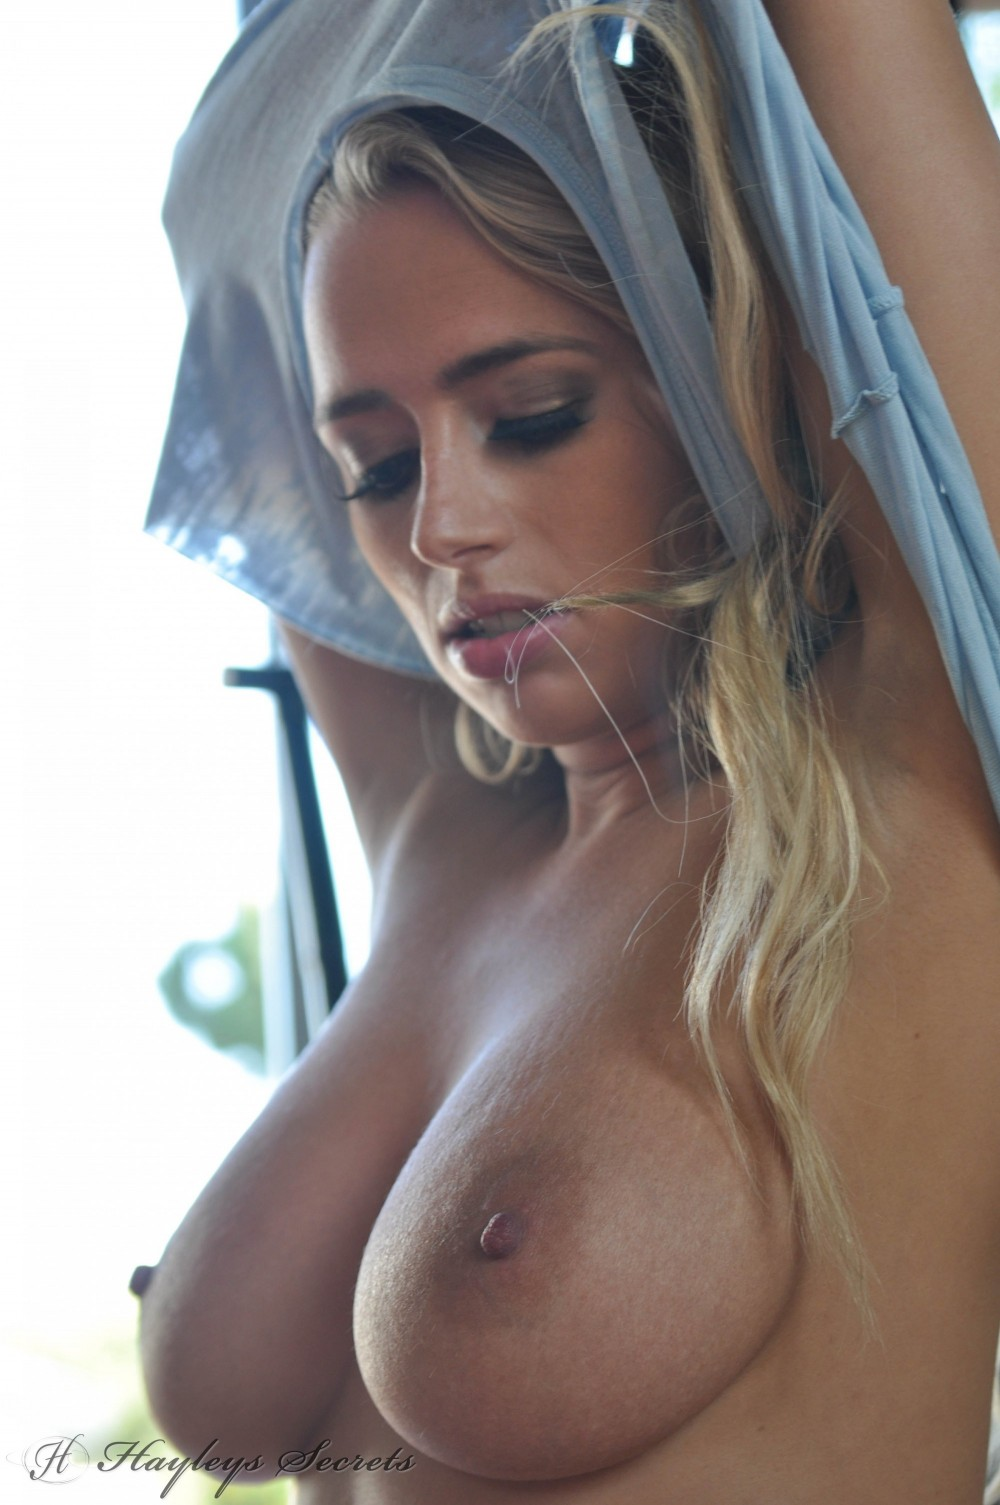 click here to see more holly gibbons hayleys secret